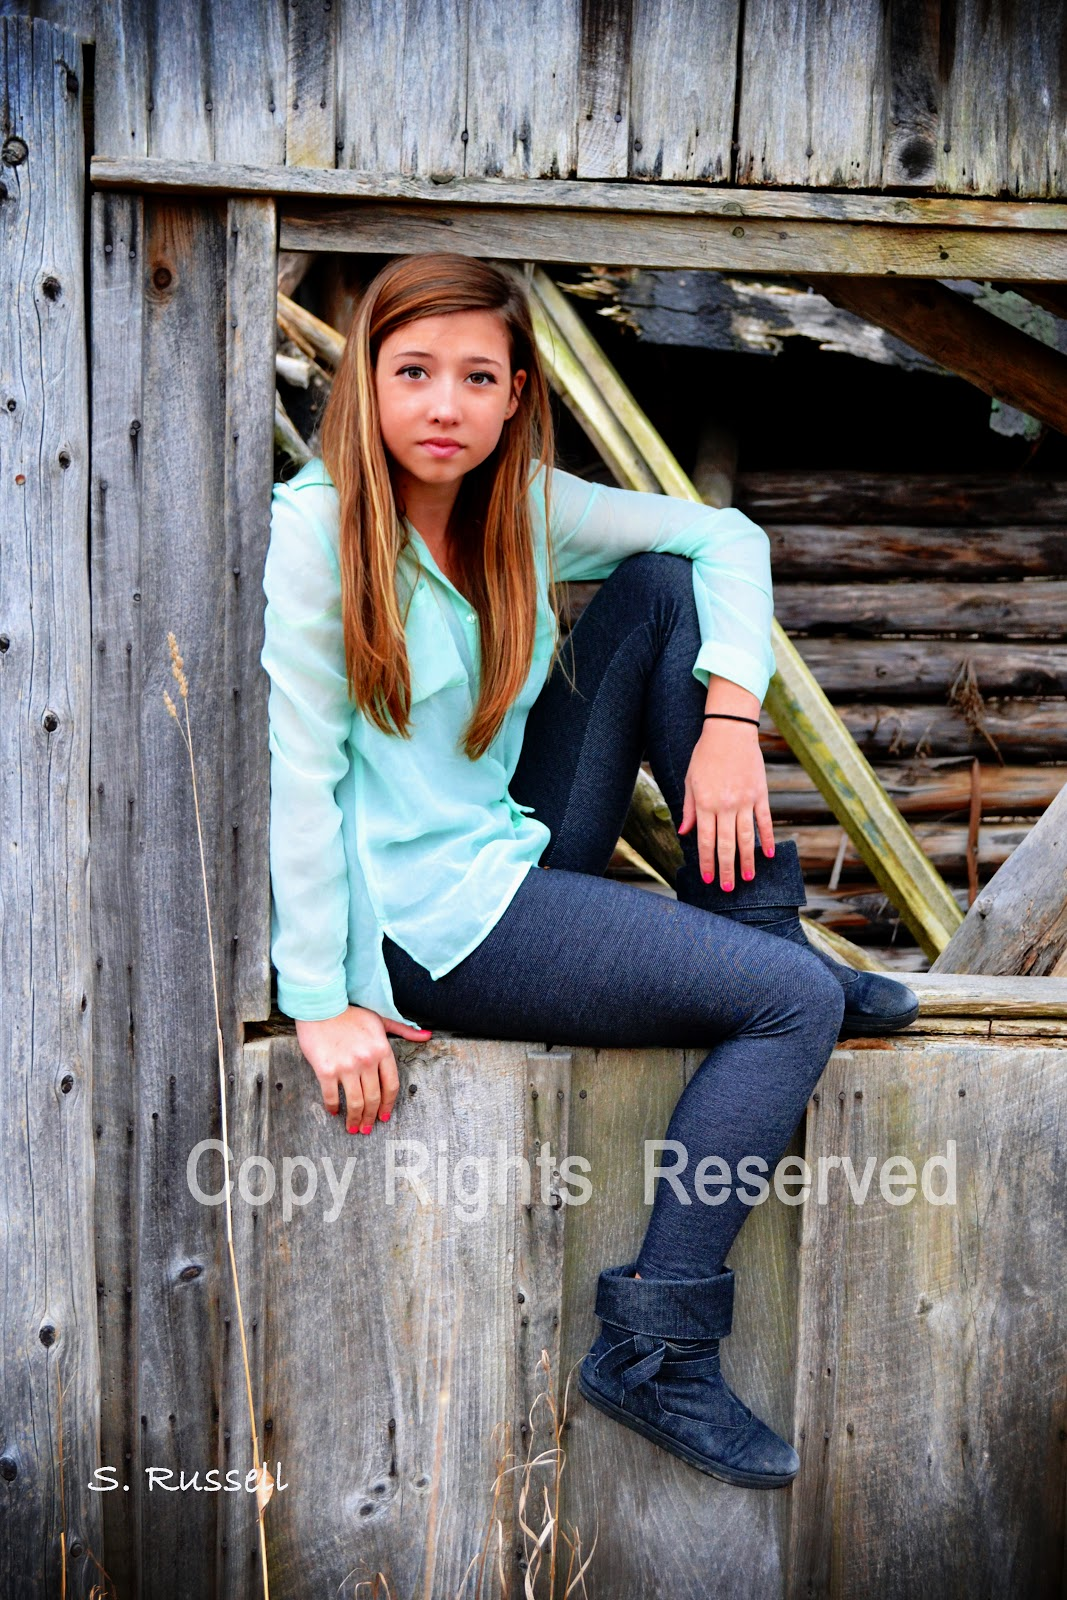 tempest schools photography pricing m6j9jNa